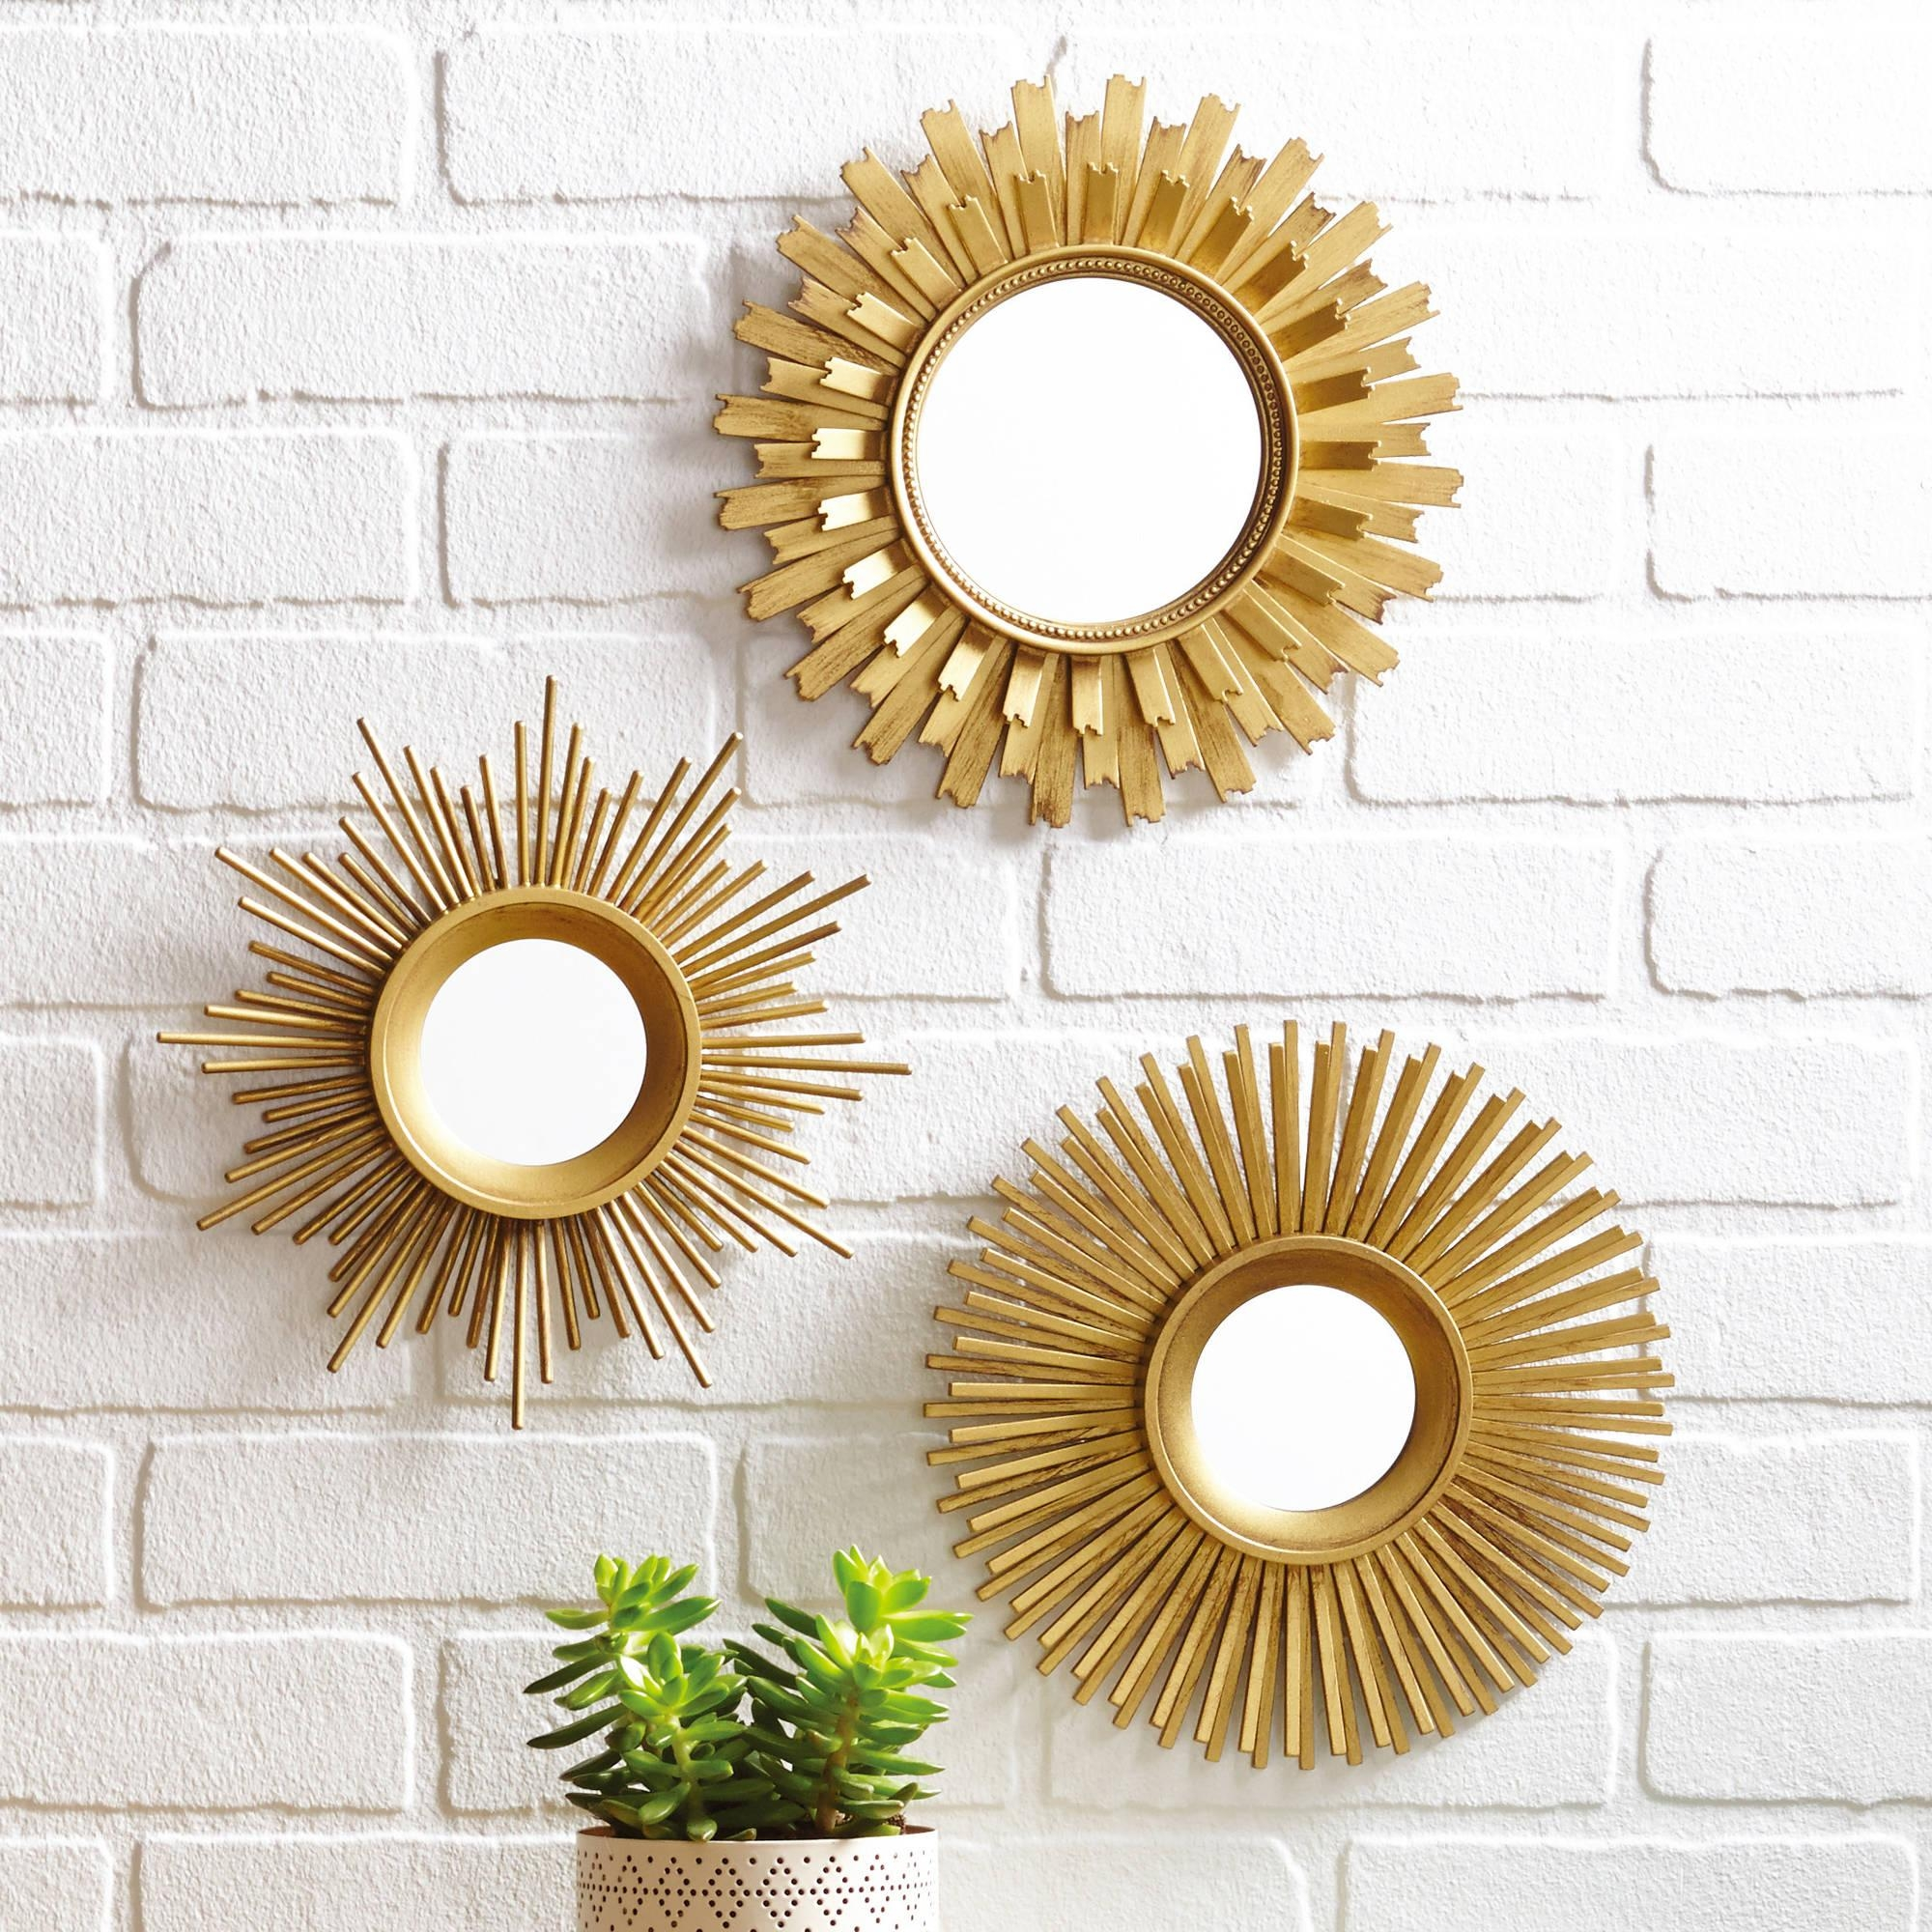 Decor : 84 Home Decoration With Mirrors 21156245 Beautify Your Regarding Small Round Mirrors Wall Art (View 8 of 20)